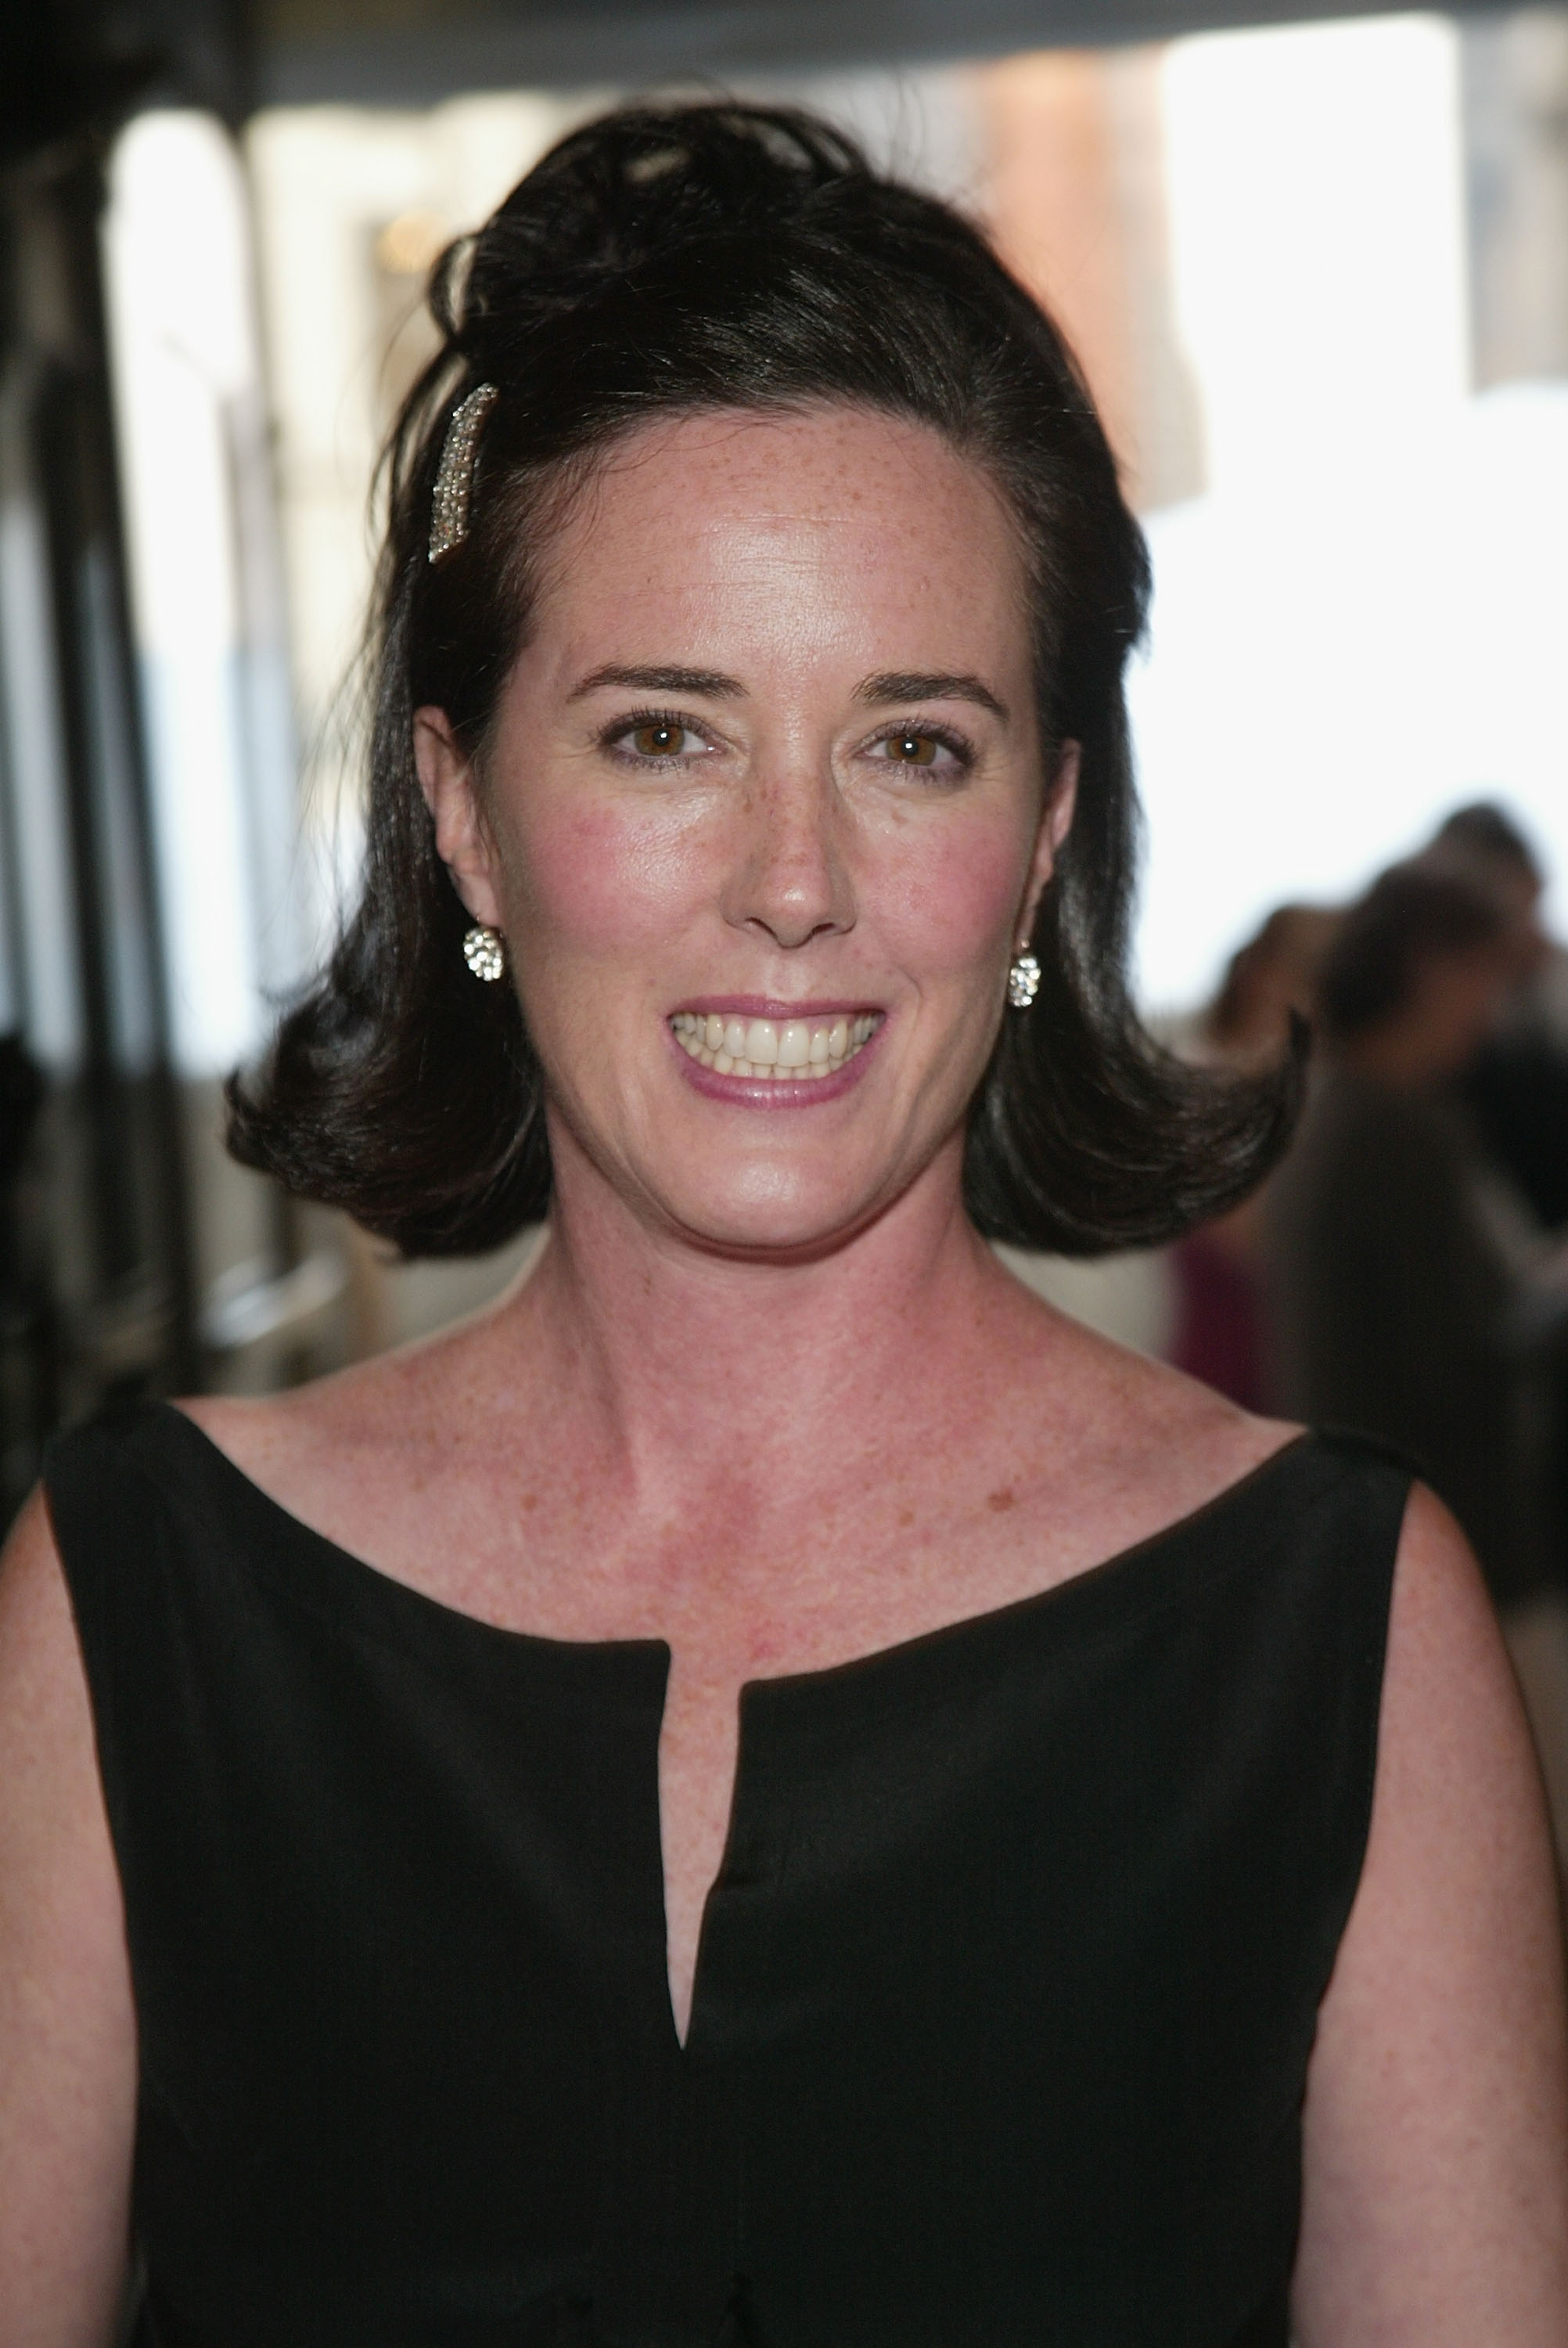 Designer Kate Spade attends the '2004 CFDA Fashion Awards' at the New York Public Library June 7, 2004 in New York City.